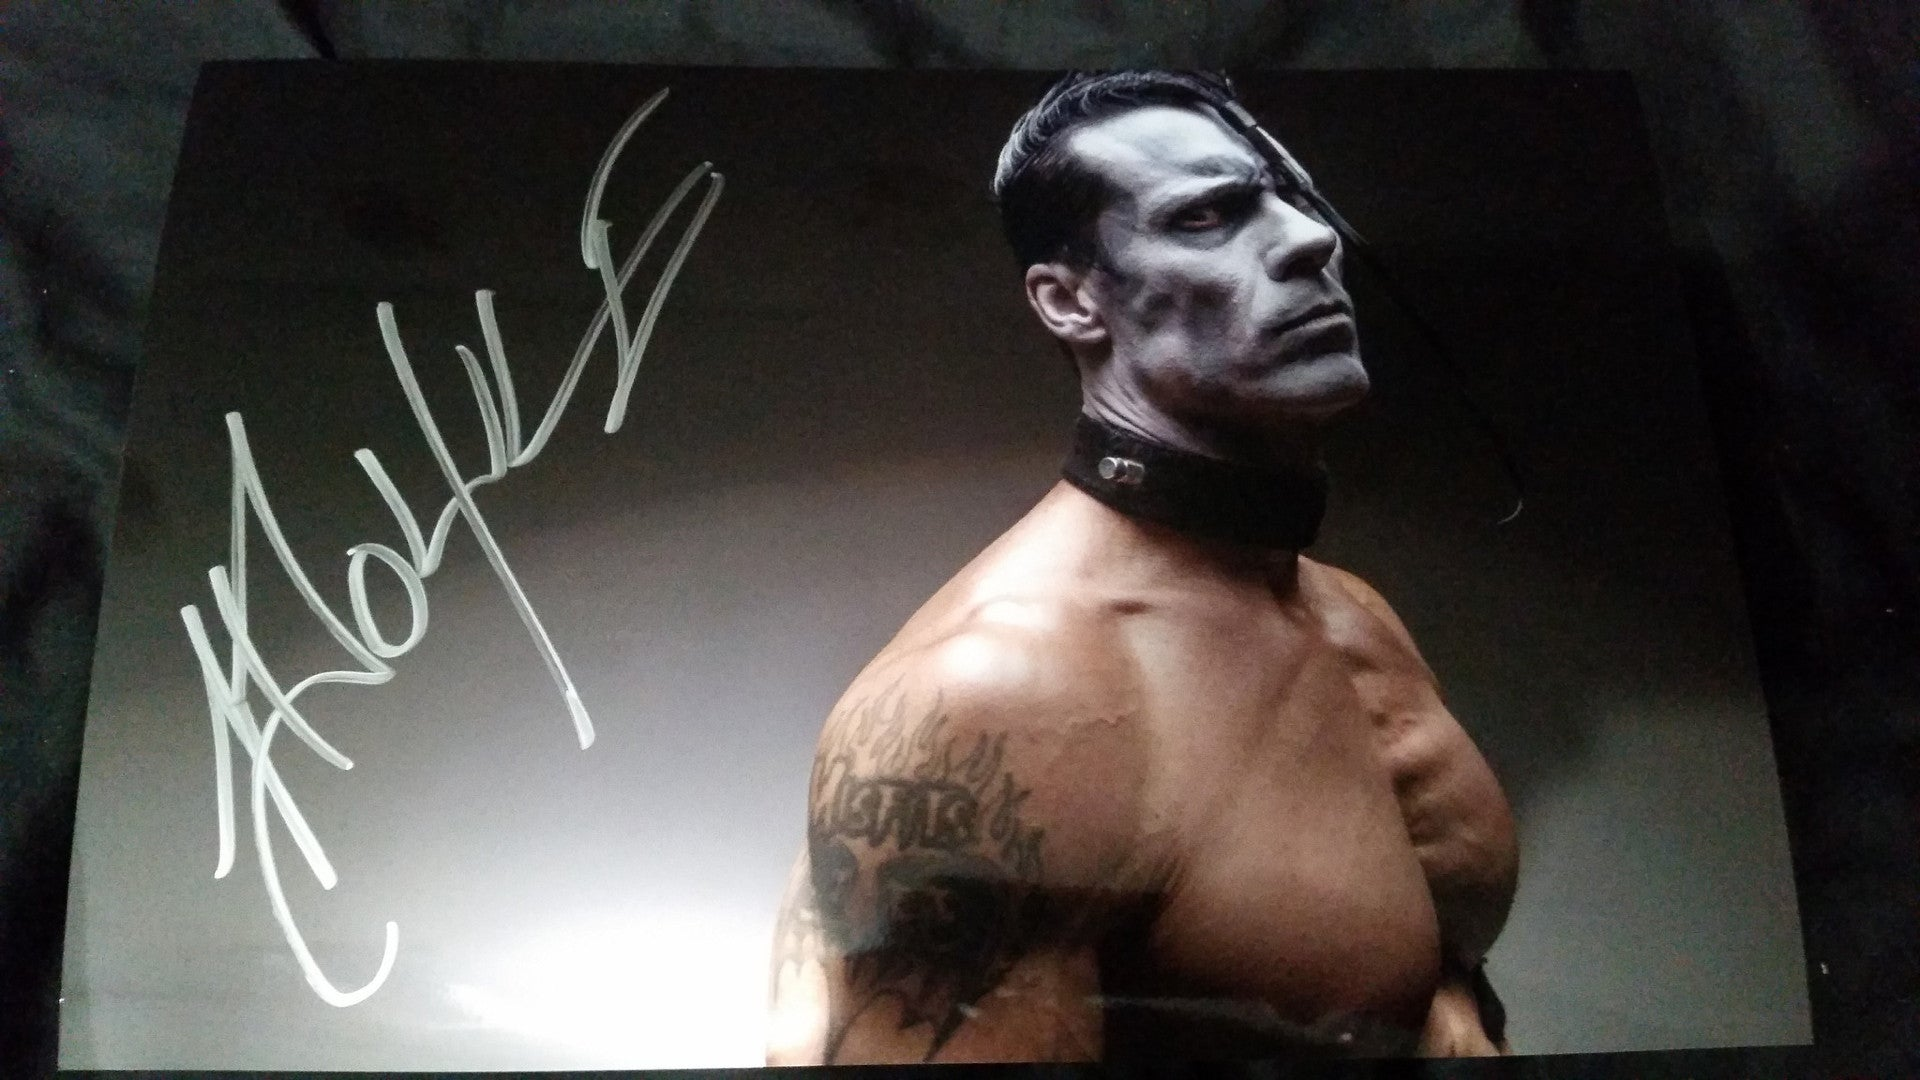 Doyle Wolfgang Von Frankenstein - Strength - Signed limited edition metallic 8x12